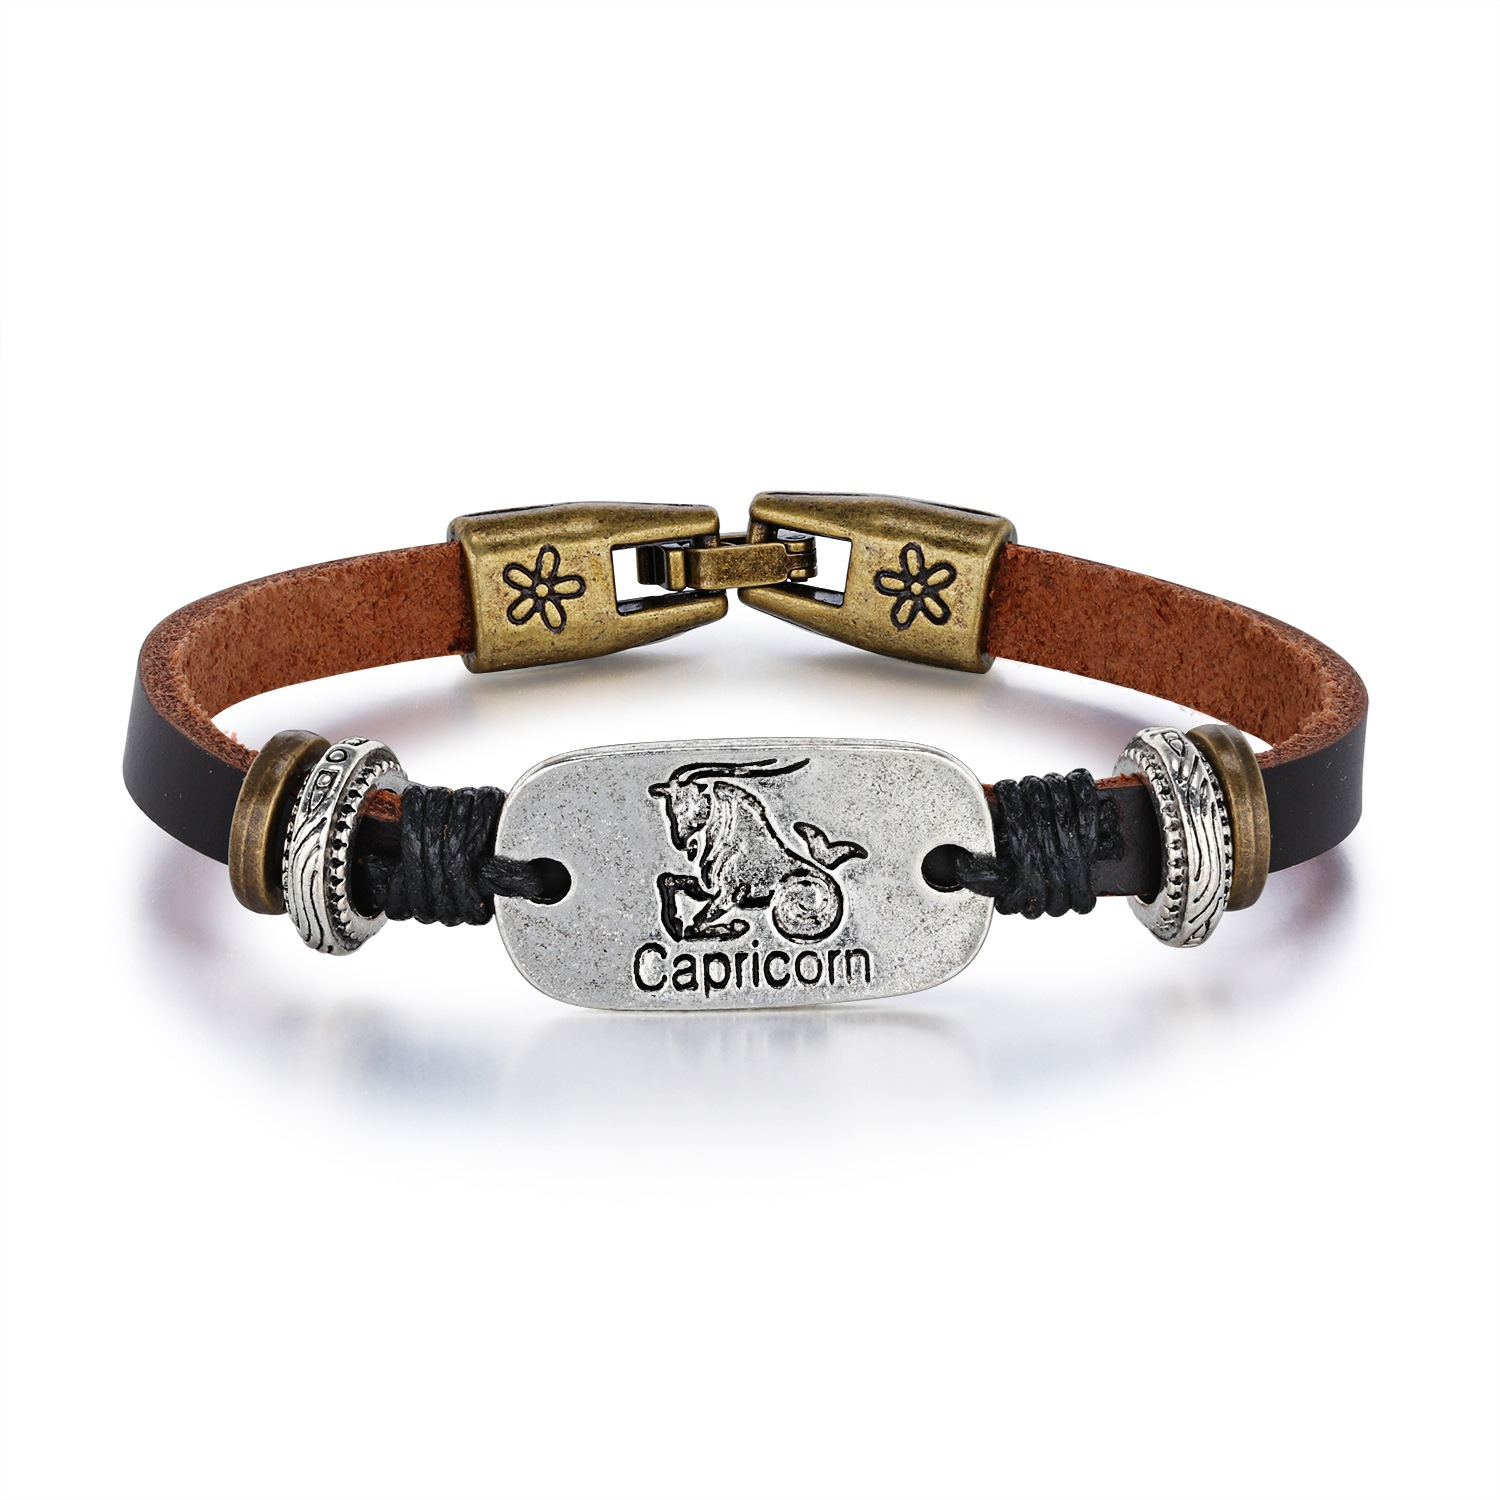 Image of Capricorn PU Rope Alloy Personalized Bracelet